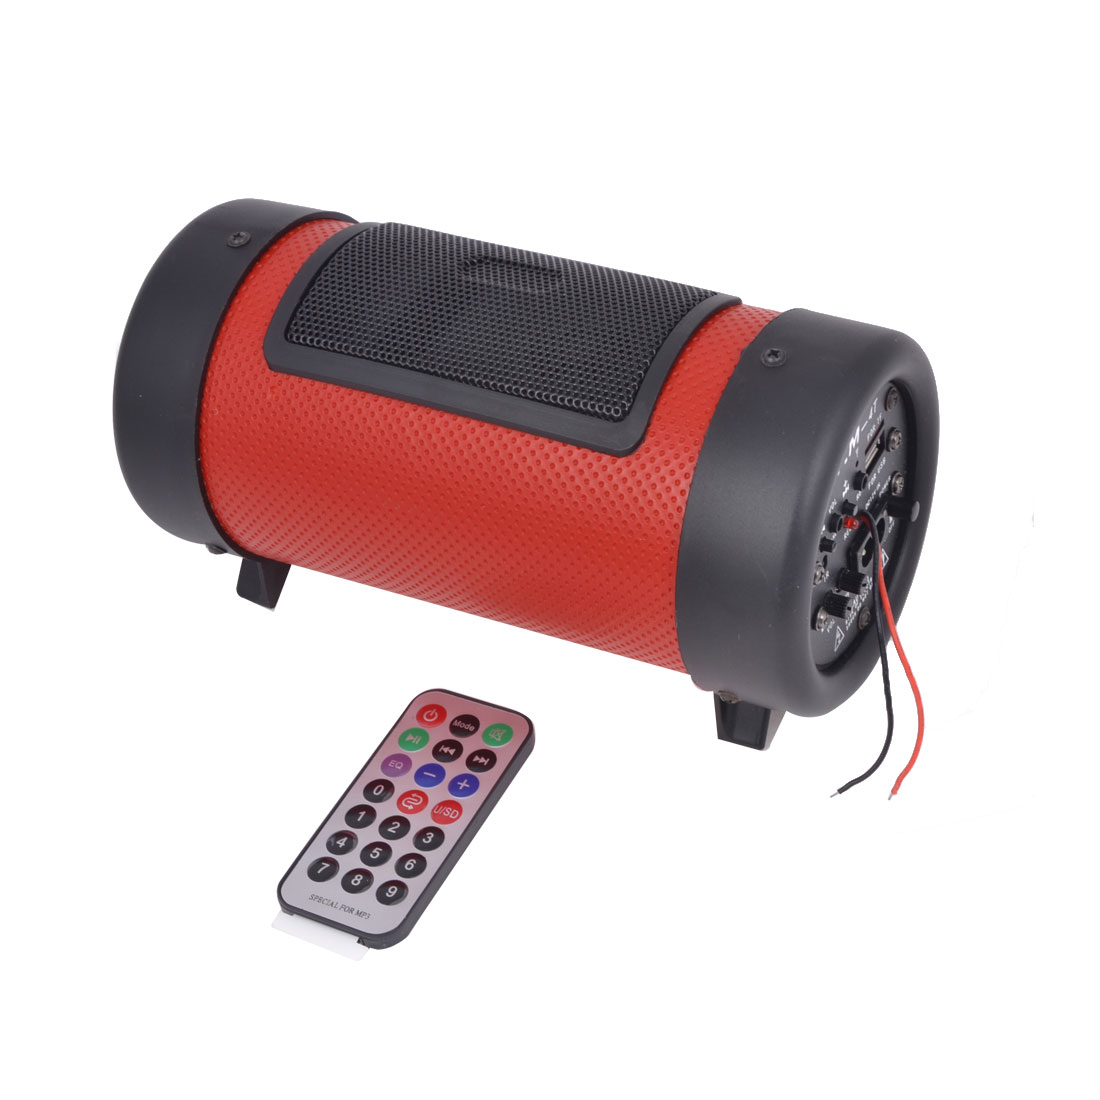 UK Plug AC 110-240V DC 12V Cylinder Design Motorcycle Car Subwoofer Speaker MP3 Player Red Black 22x9.5cm